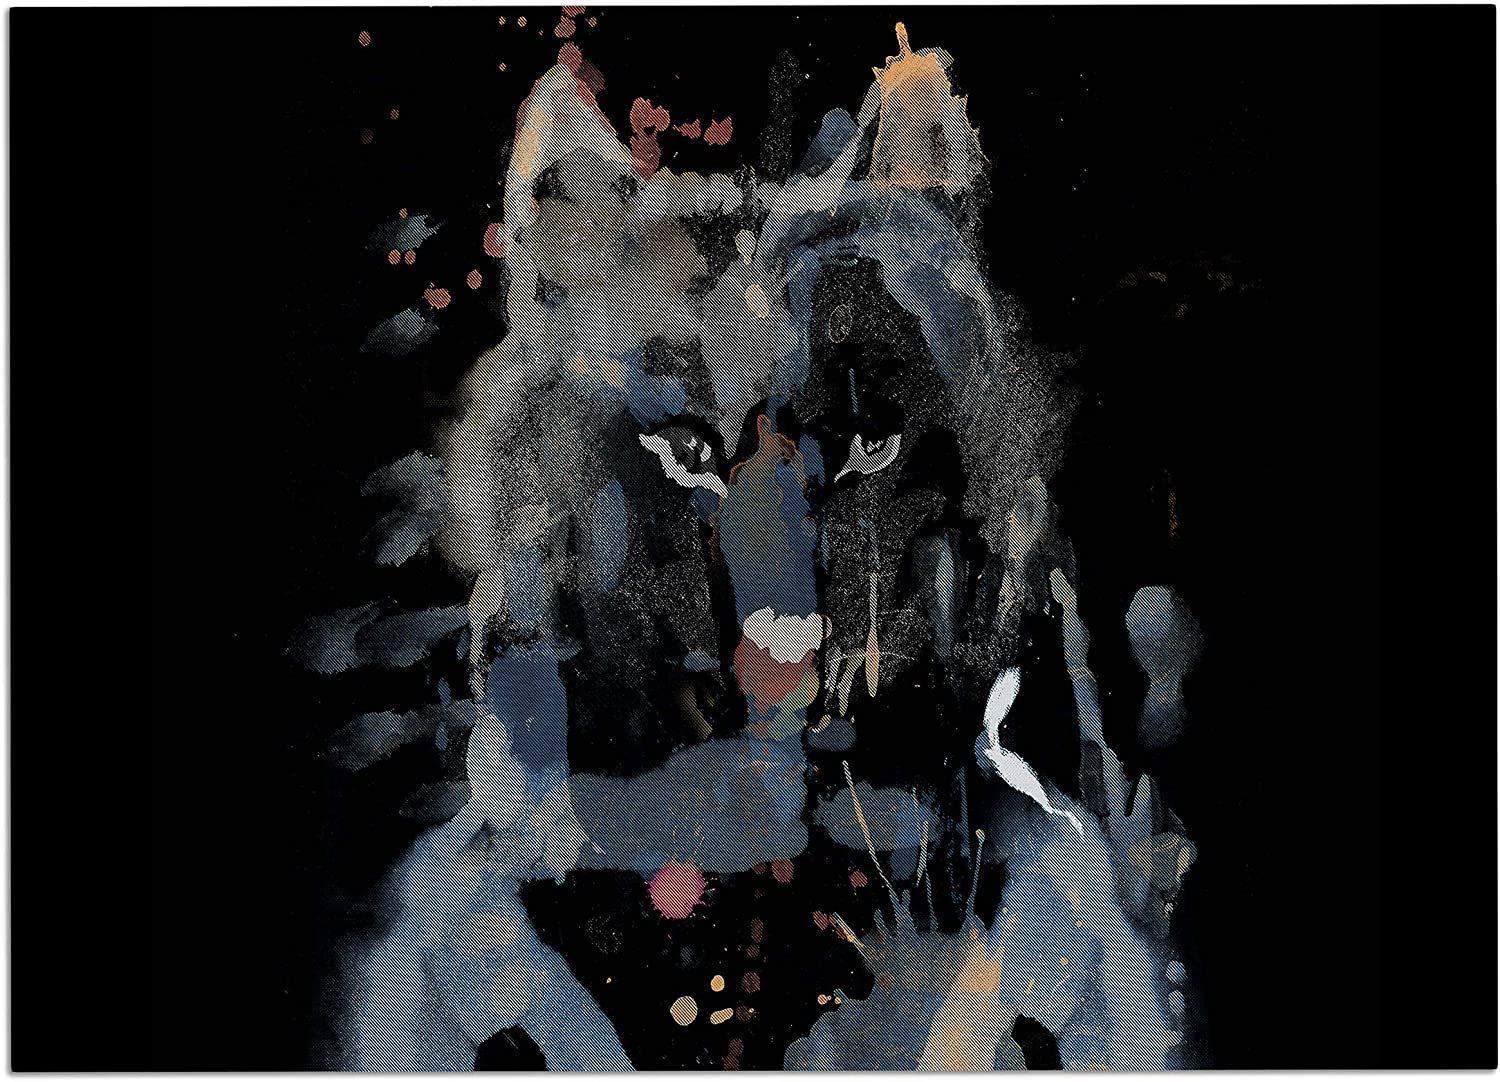 KESS InHouse FH1072ADM02 Frederic LevyHadida Watercolor Foxy Black bluee Watercolor Dog Place Mat, 24  x 15